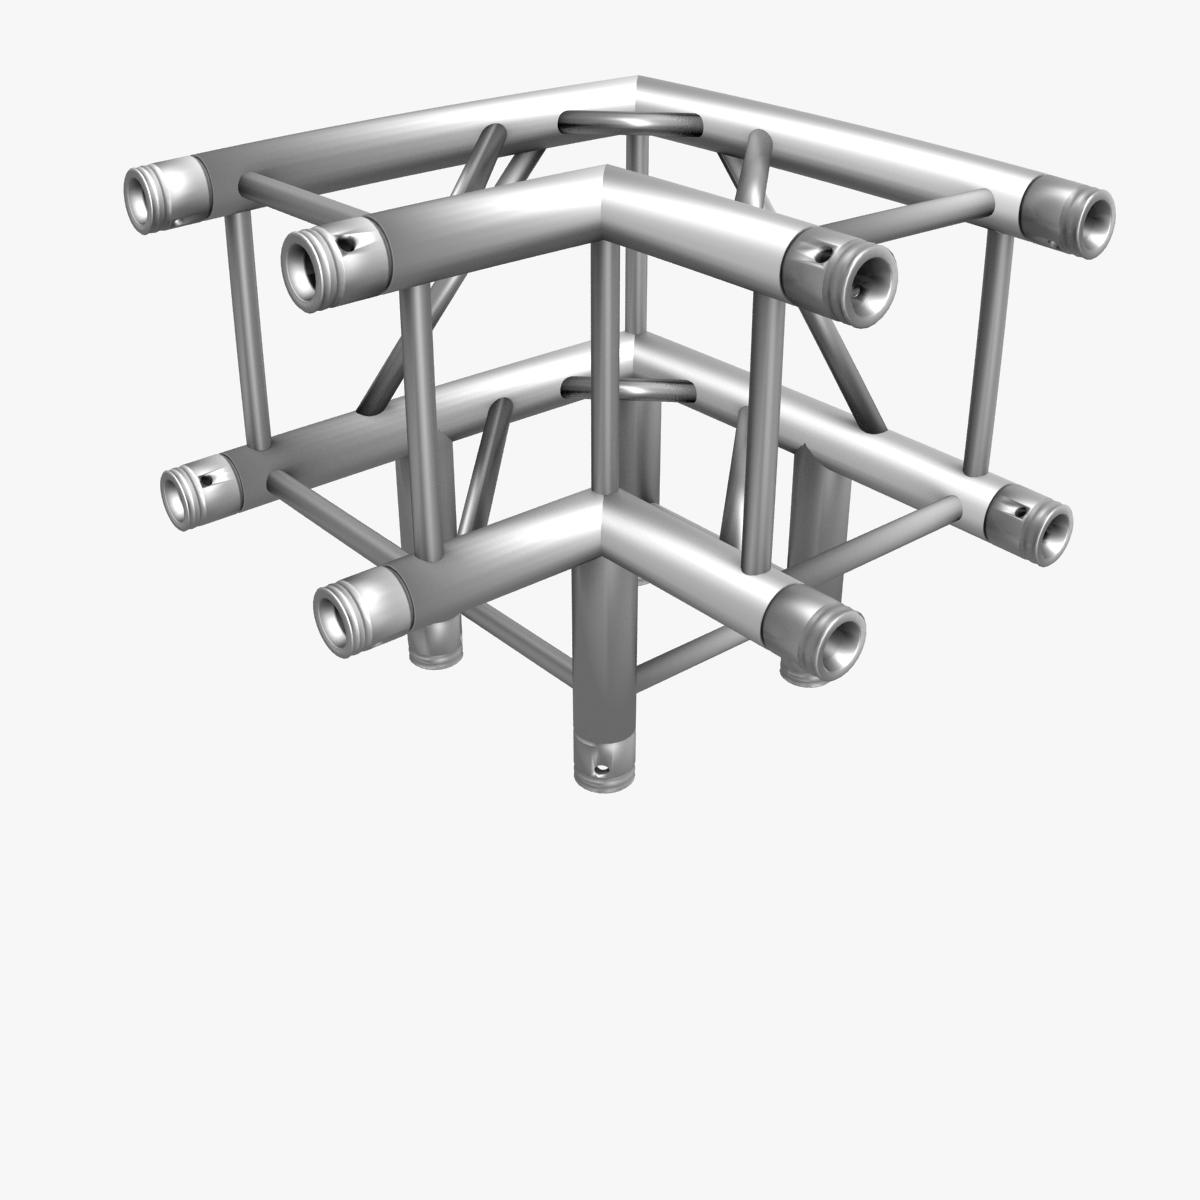 square truss standard (collection 24 modular) 3d model 3ds max dxf fbx c4d dae  texture obj 216364